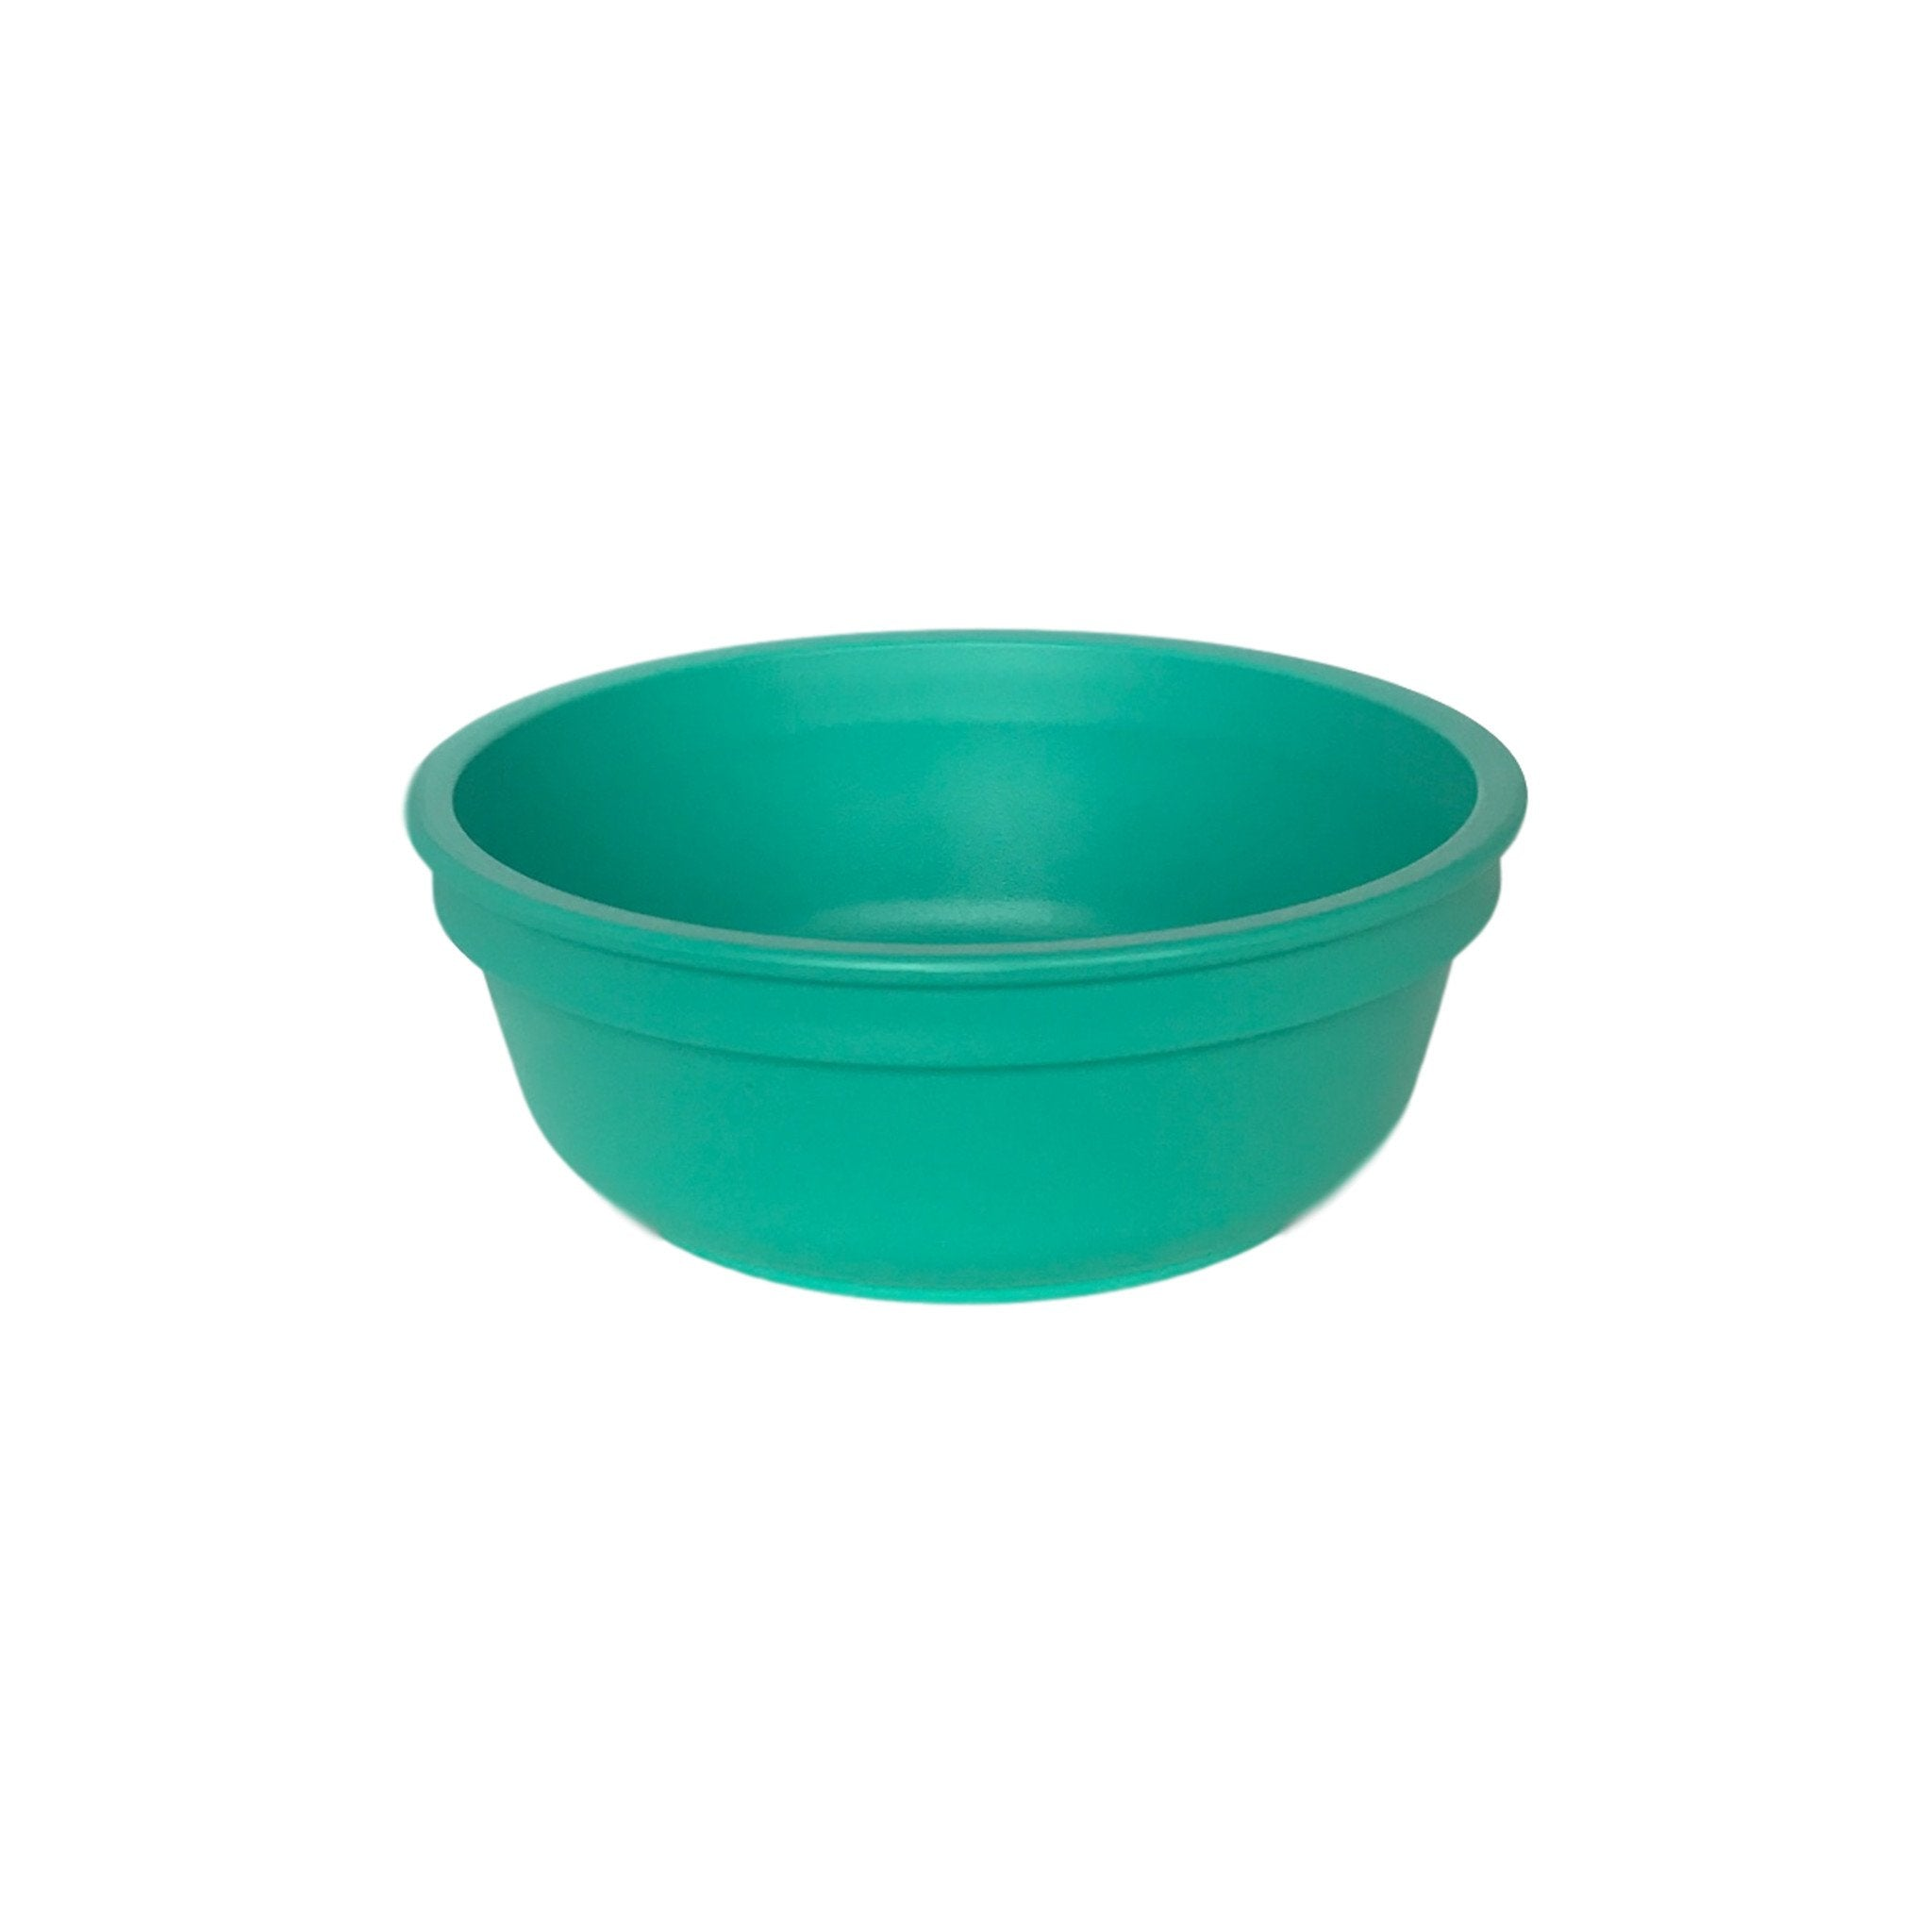 Replay Bowl Replay Lifestyle Aqua at Little Earth Nest Eco Shop